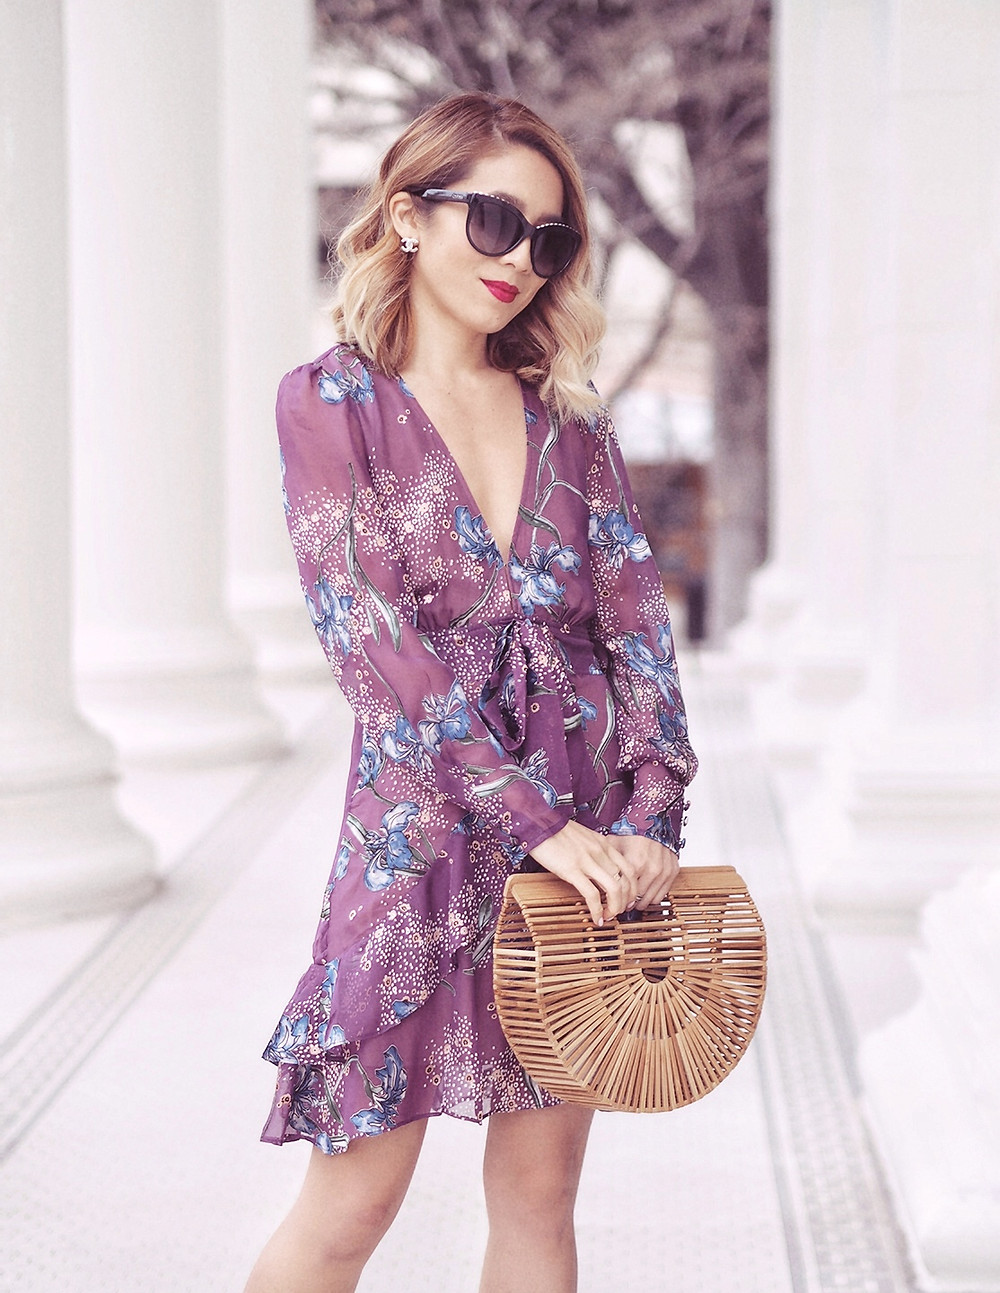 For Love and Lemons Dress | Lam in Louboutins